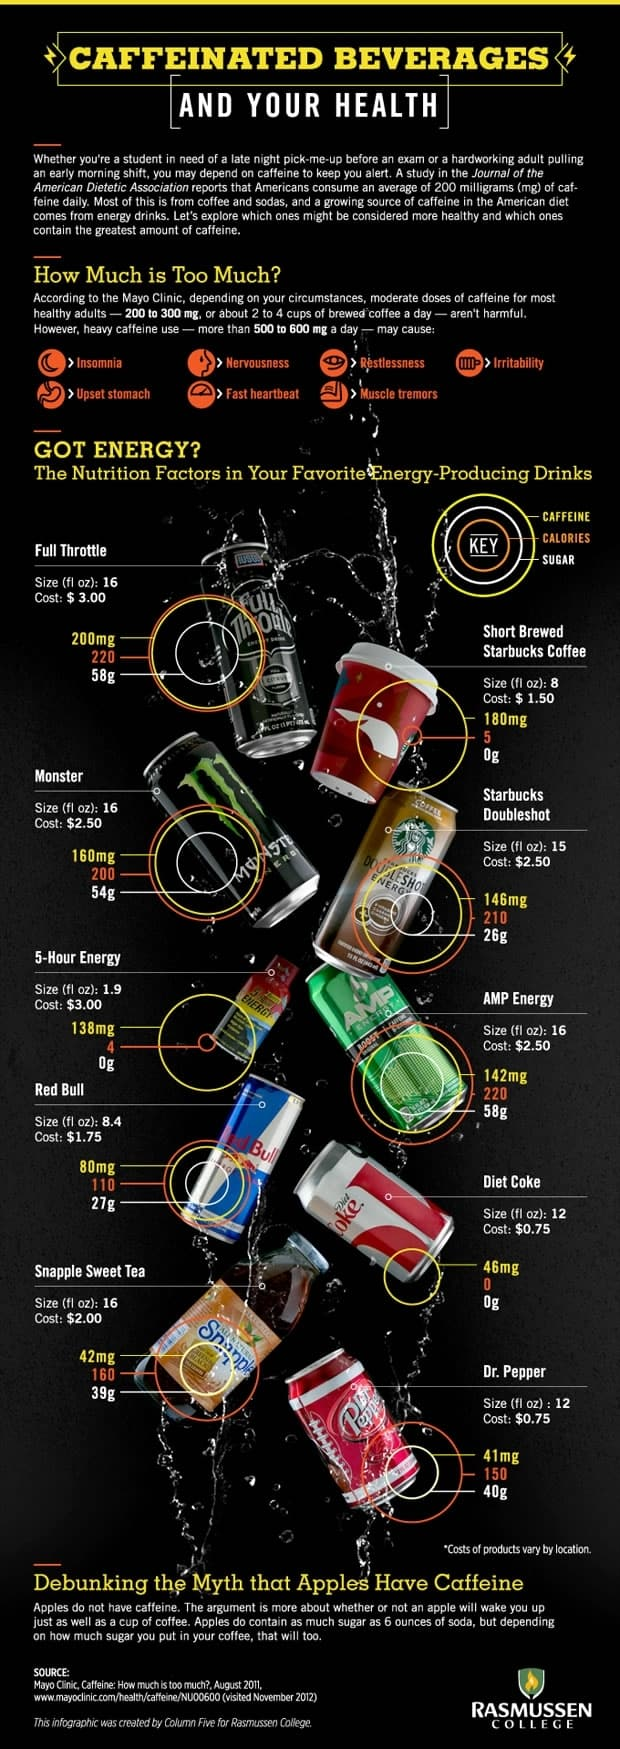 Caffeinated Beverages and Your Health